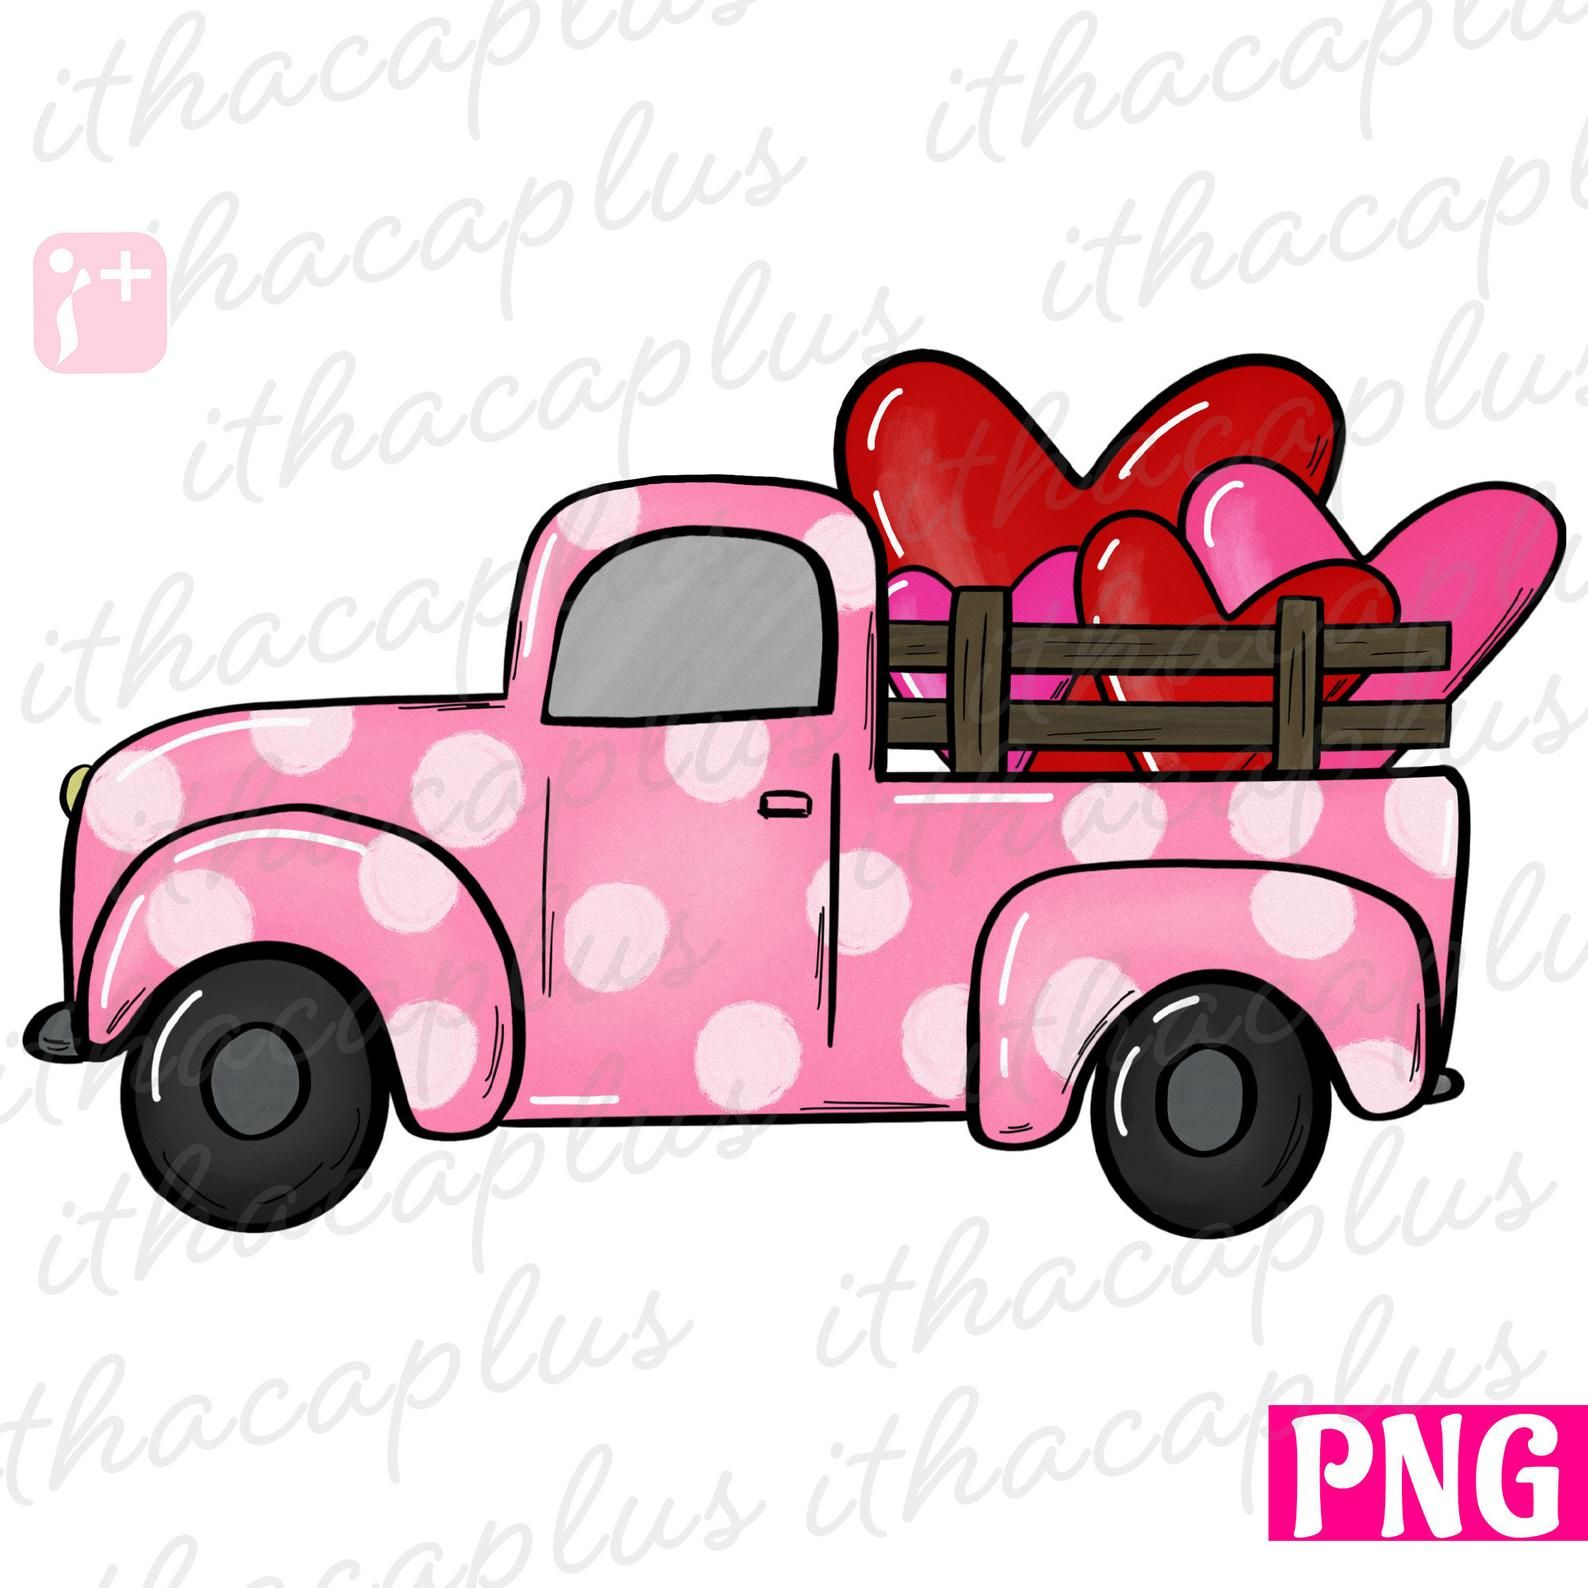 Valentines Day Sublimation Valentine Truck Png Vintage Truck Etsy In 2021 Valentines Day Drawing Valentines Art Valentine Drawing